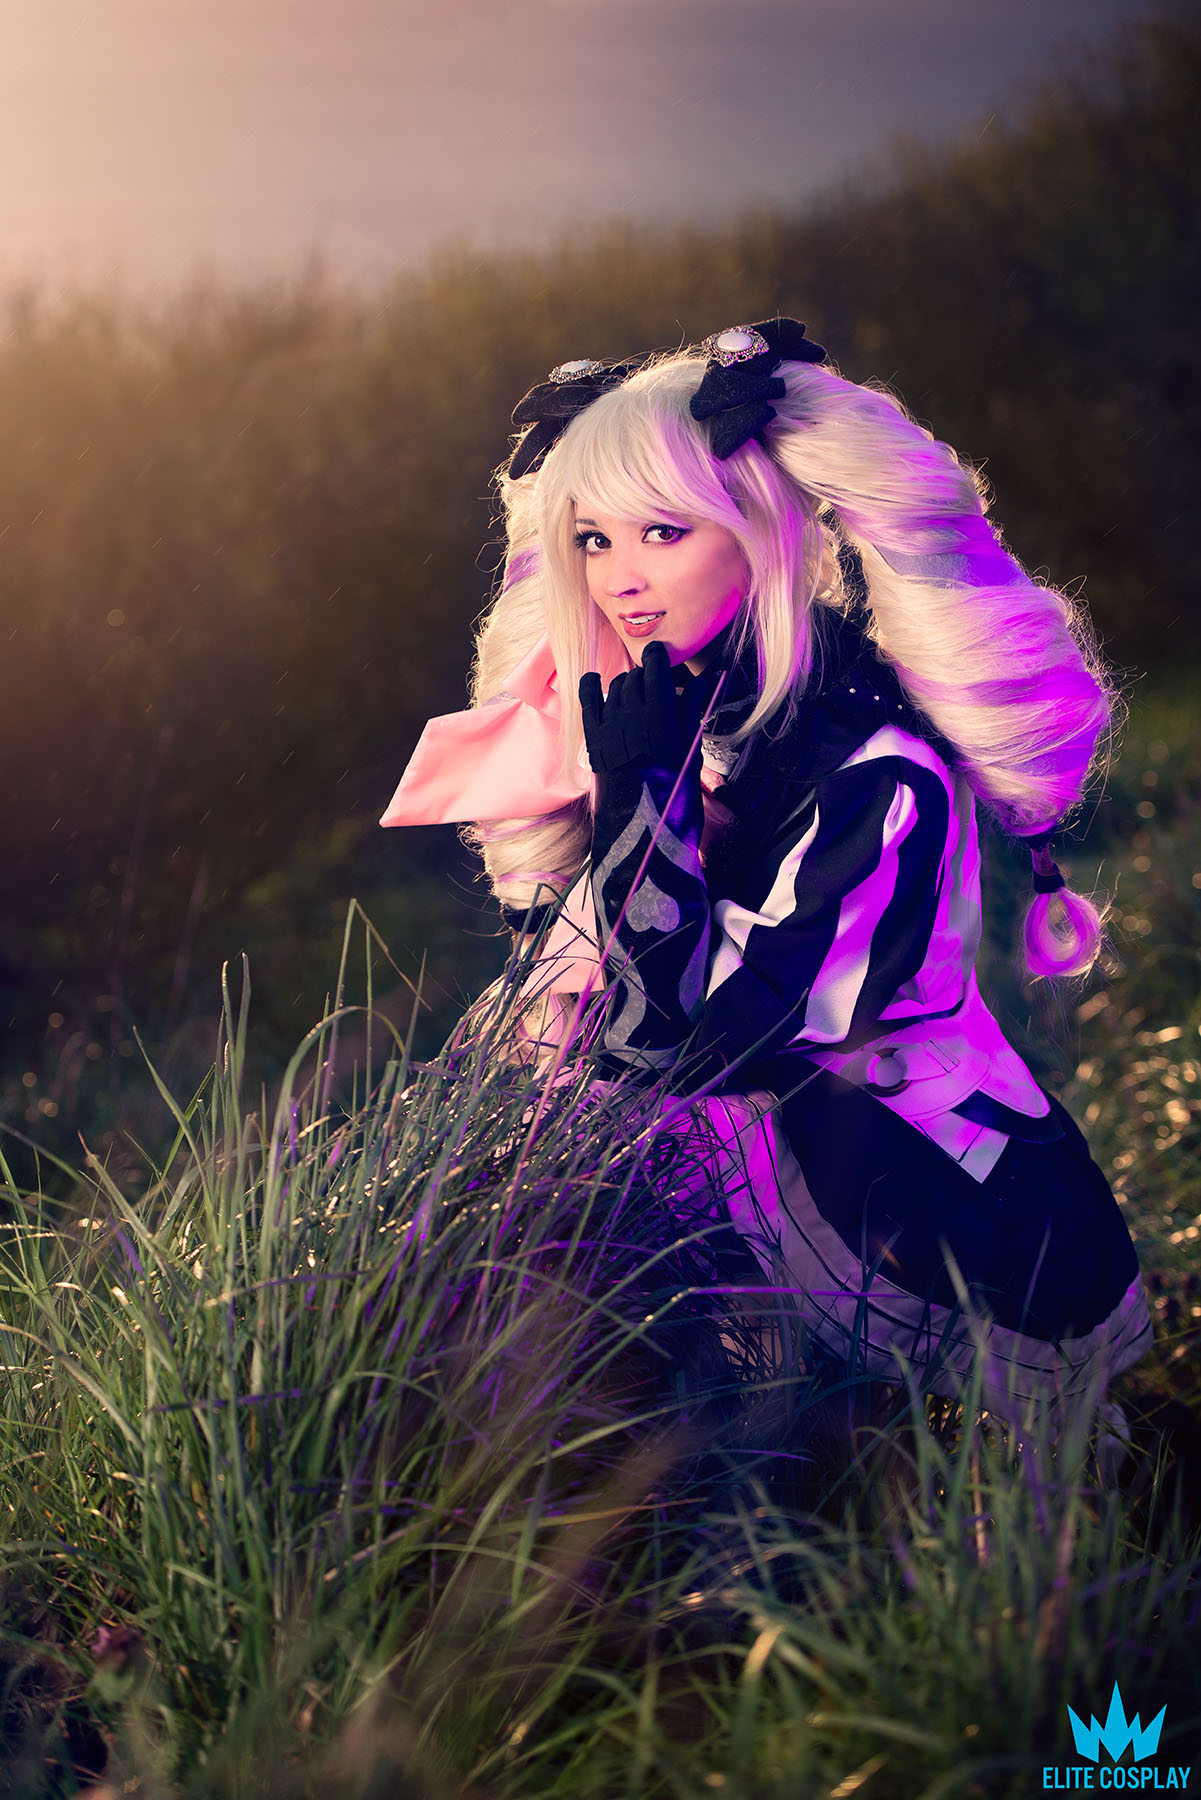 Elise Cosplay Photoshoot Sakura Con 2016 Elite Cosplay